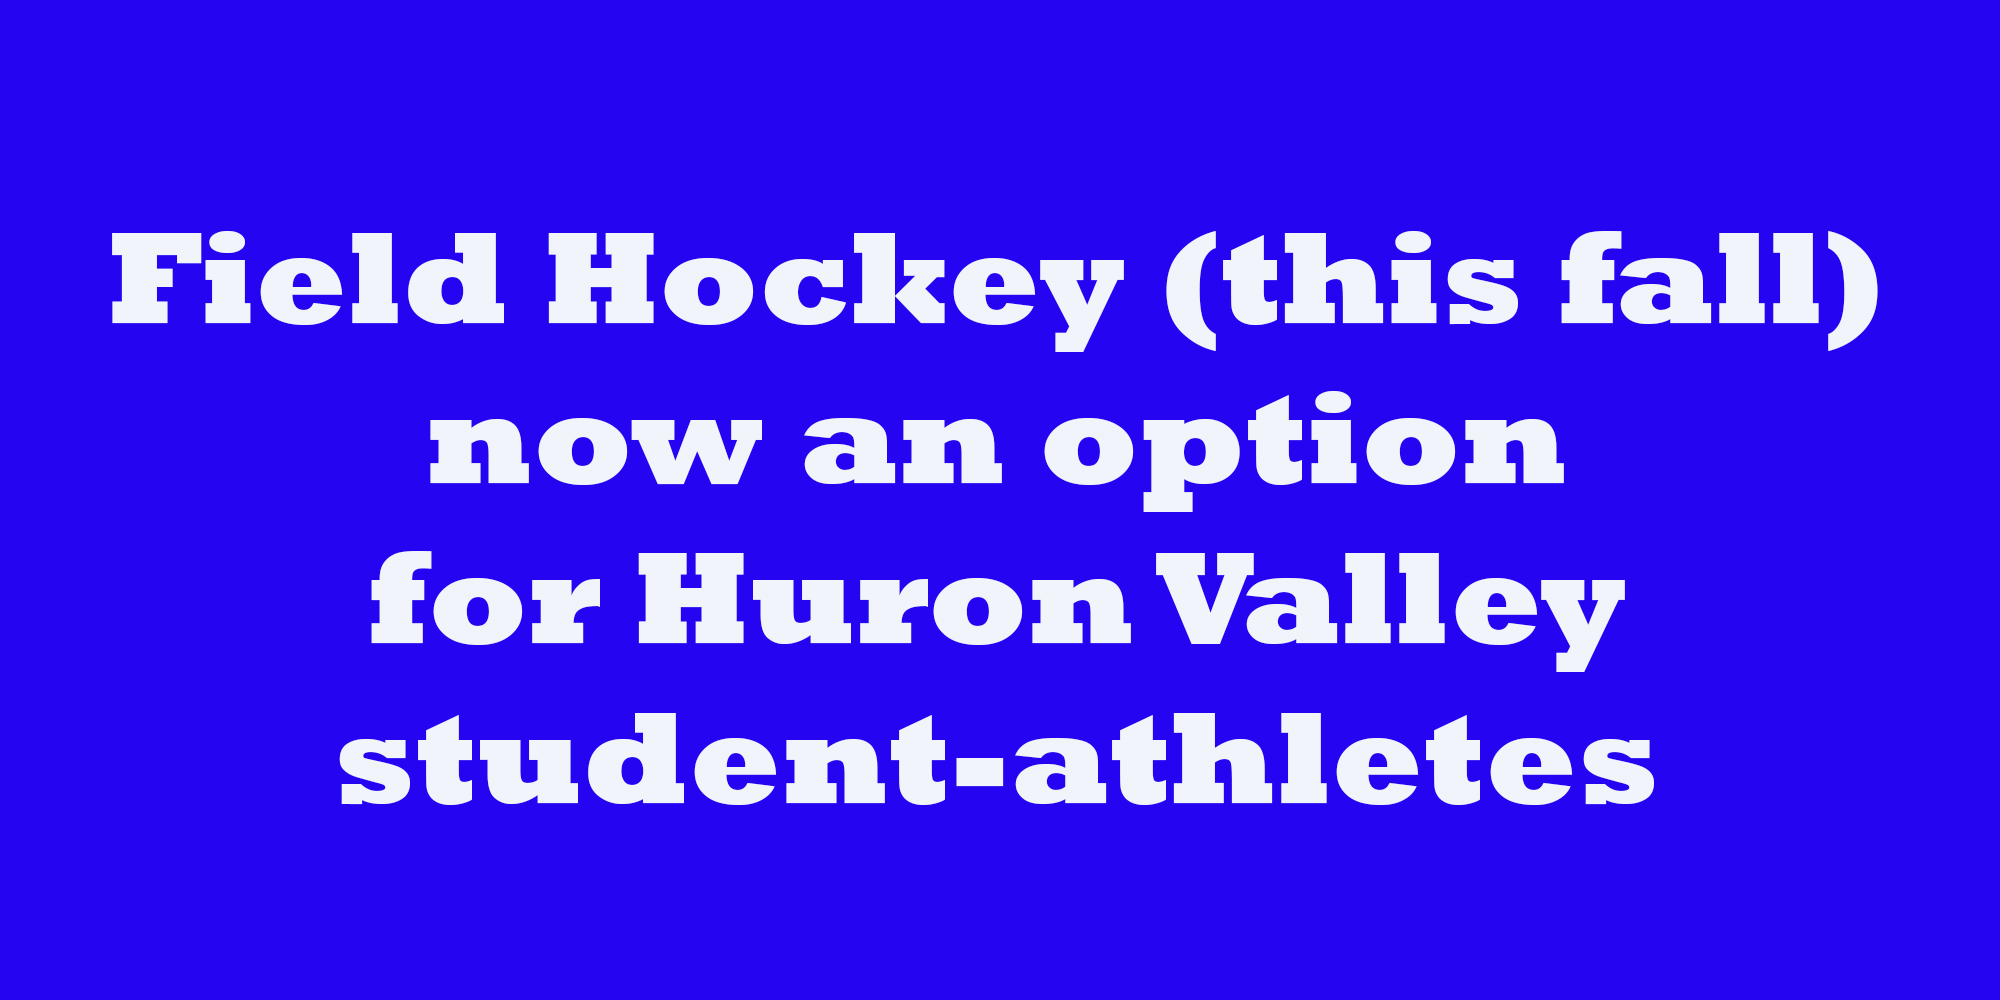 FIELD HOCKEY now an option for Huron Valley student-athletes